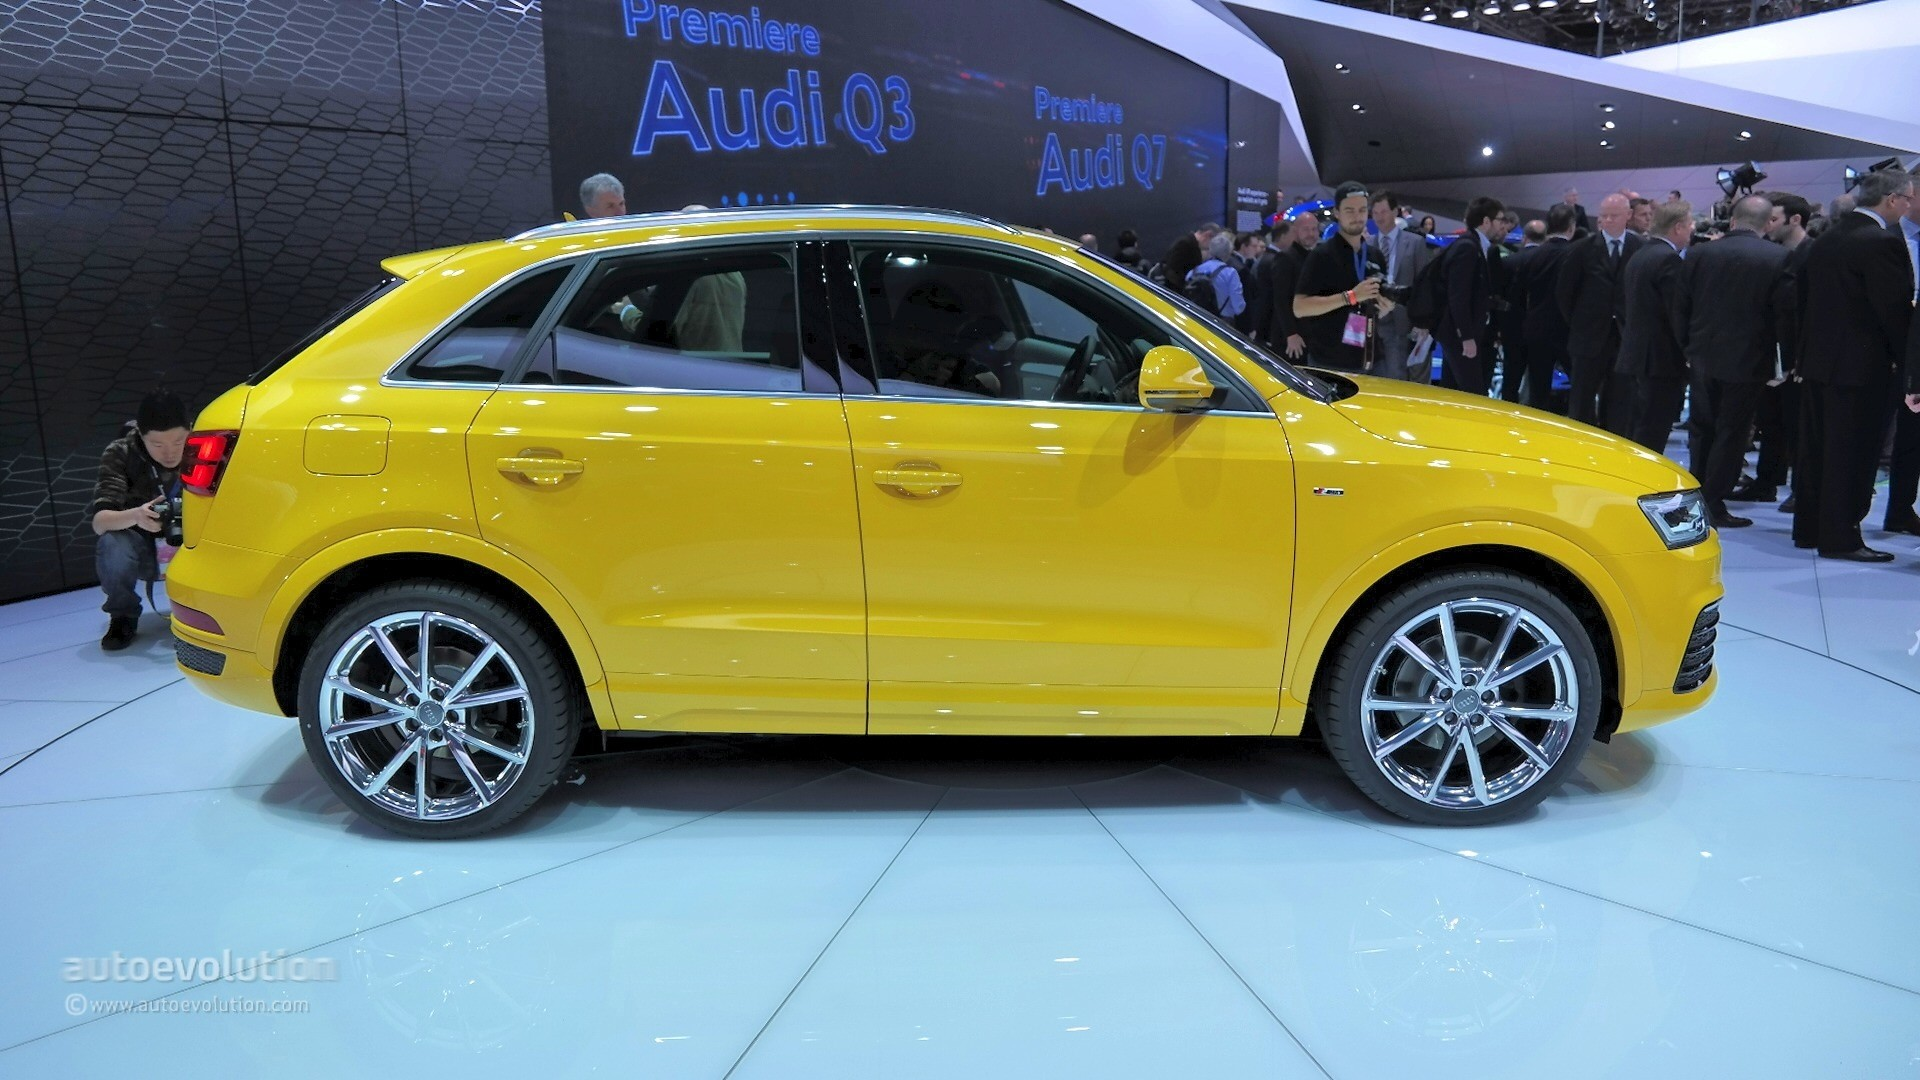 2016 audi q3 debuts new design and 210 hp engine in detroit live photos autoevolution. Black Bedroom Furniture Sets. Home Design Ideas